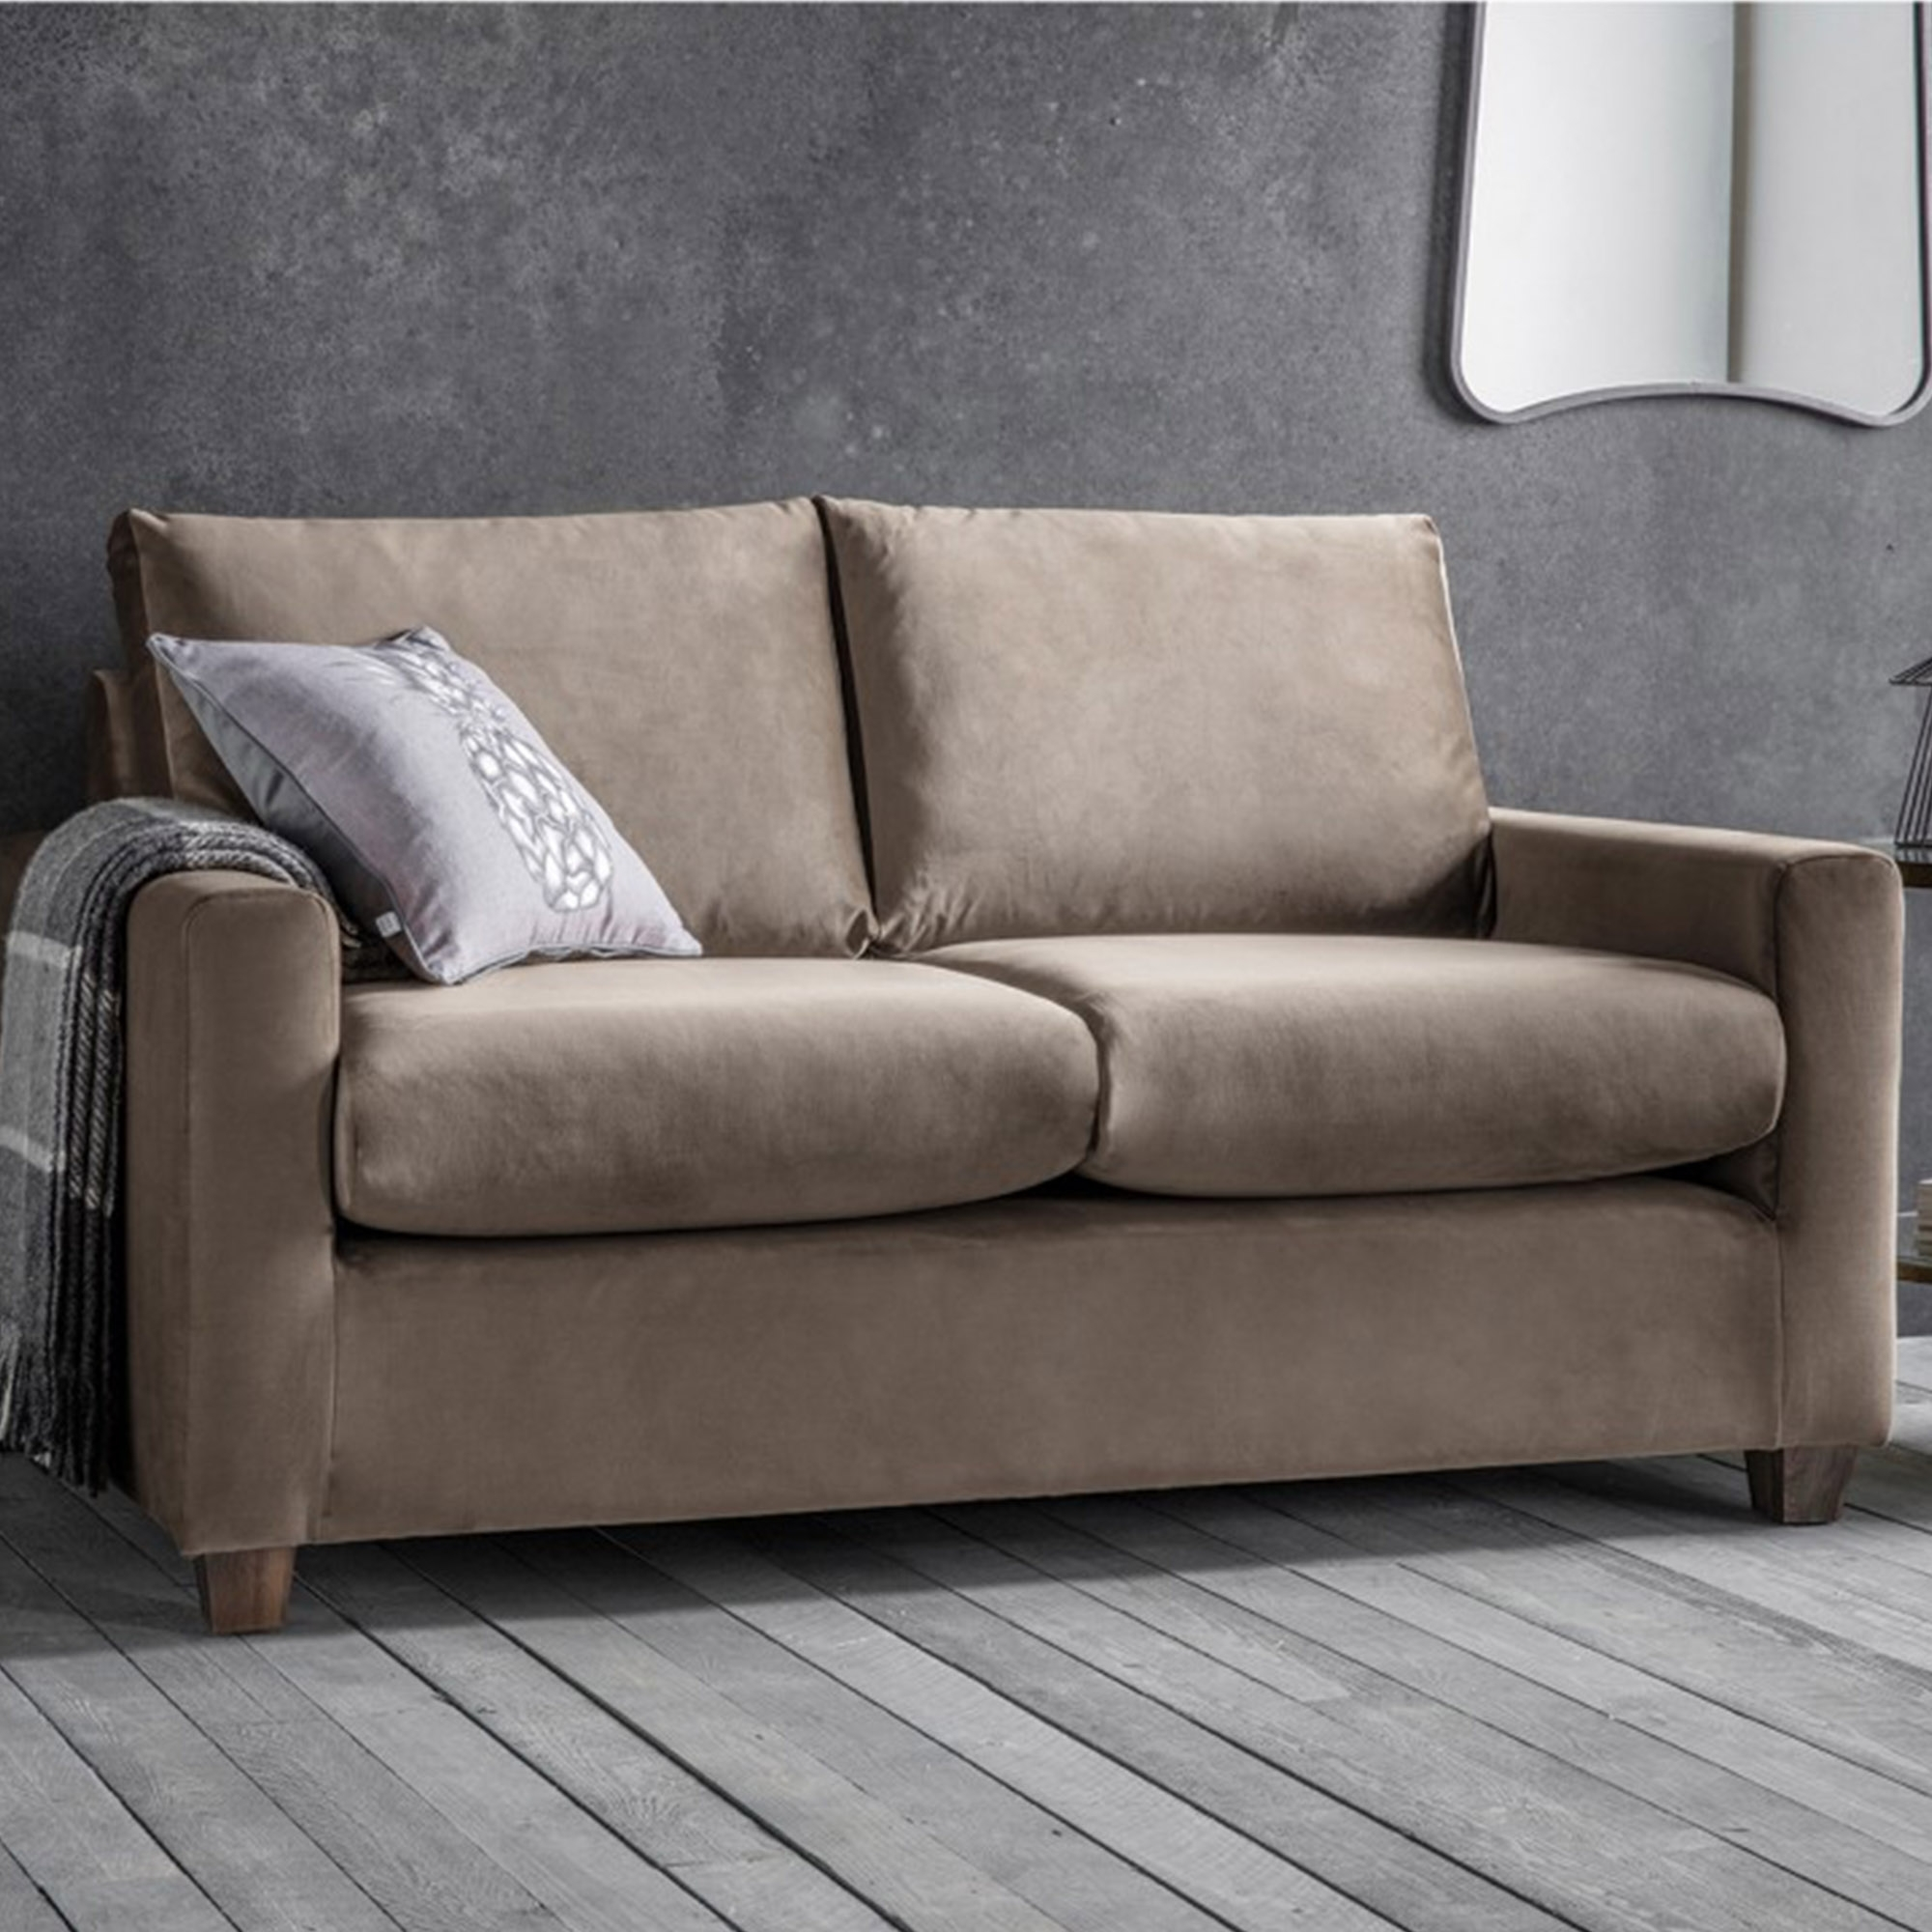 Brussels Taupe Stratford Sofa Seating Online At Homesdirect365 Regarding Stratford Sofas (Image 3 of 15)